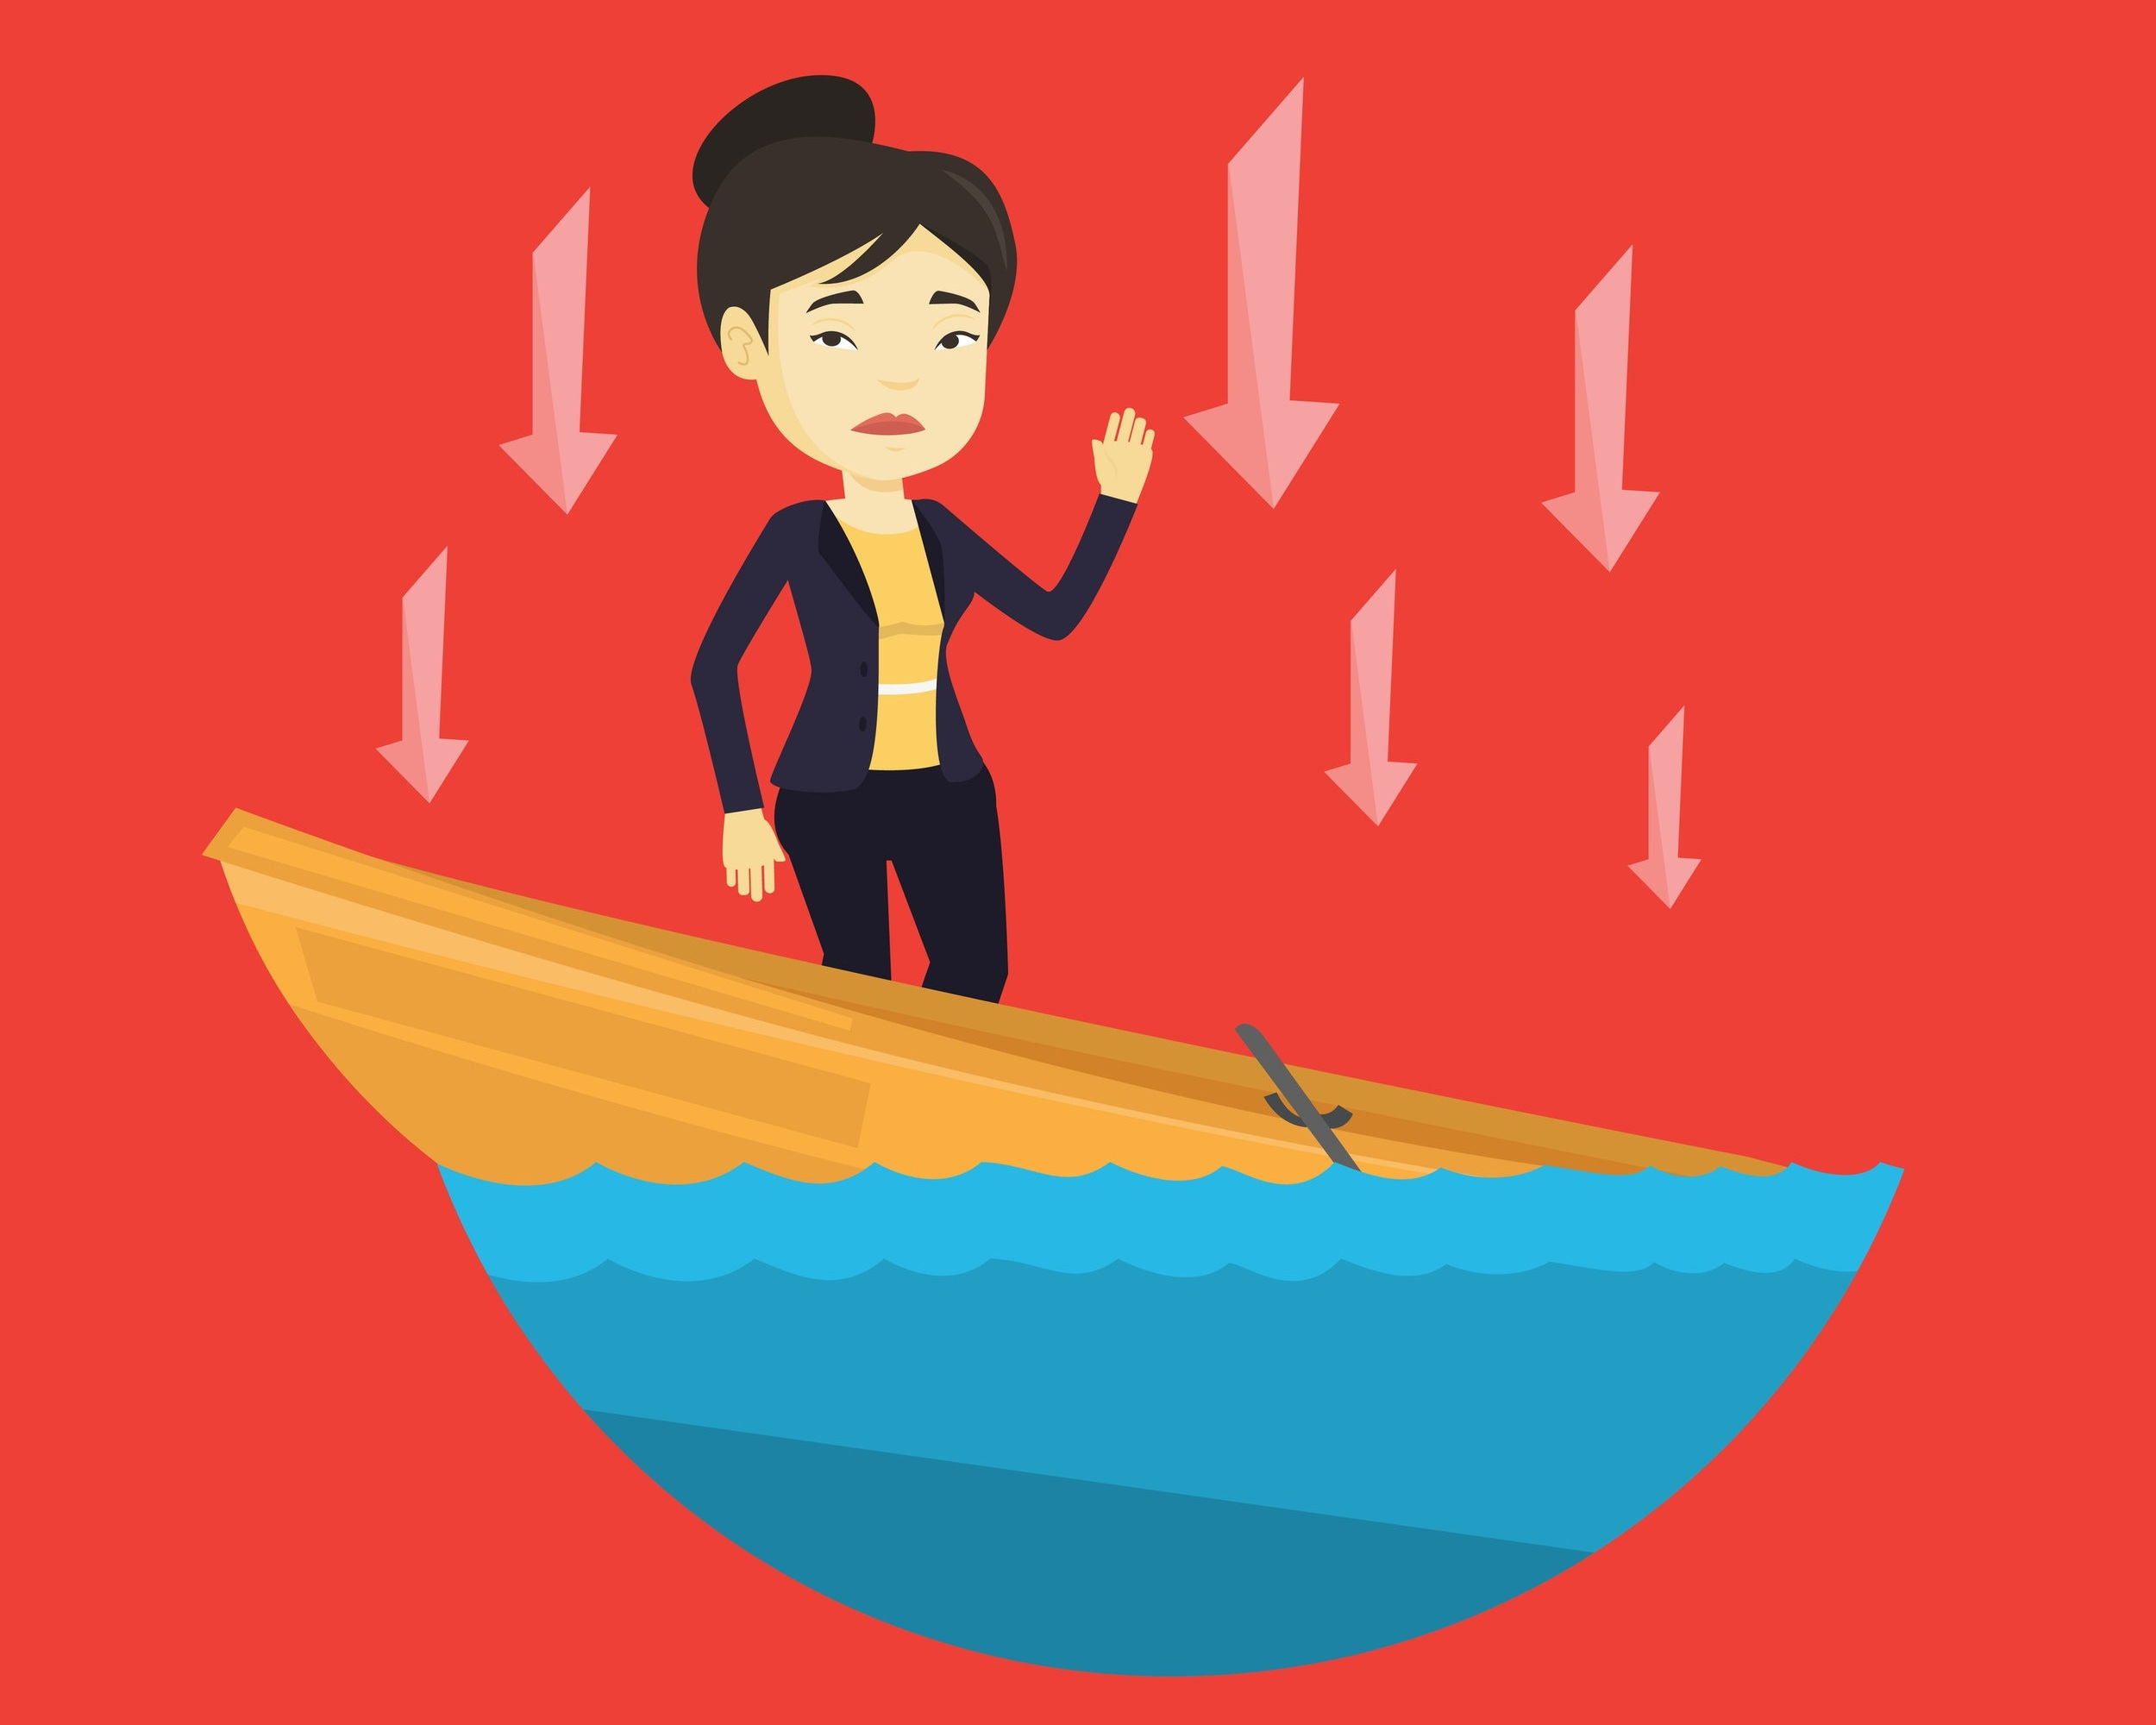 graphicstock-business-woman-standing-in-sinking-boat-and-asking-for-help-business-woman-sinking-and-arrows-behind-her-pointing-down-symbolizing-business-bankruptcy-vector-flat-design-illustration-square-layout_SQWTcHDULW_L.jpg